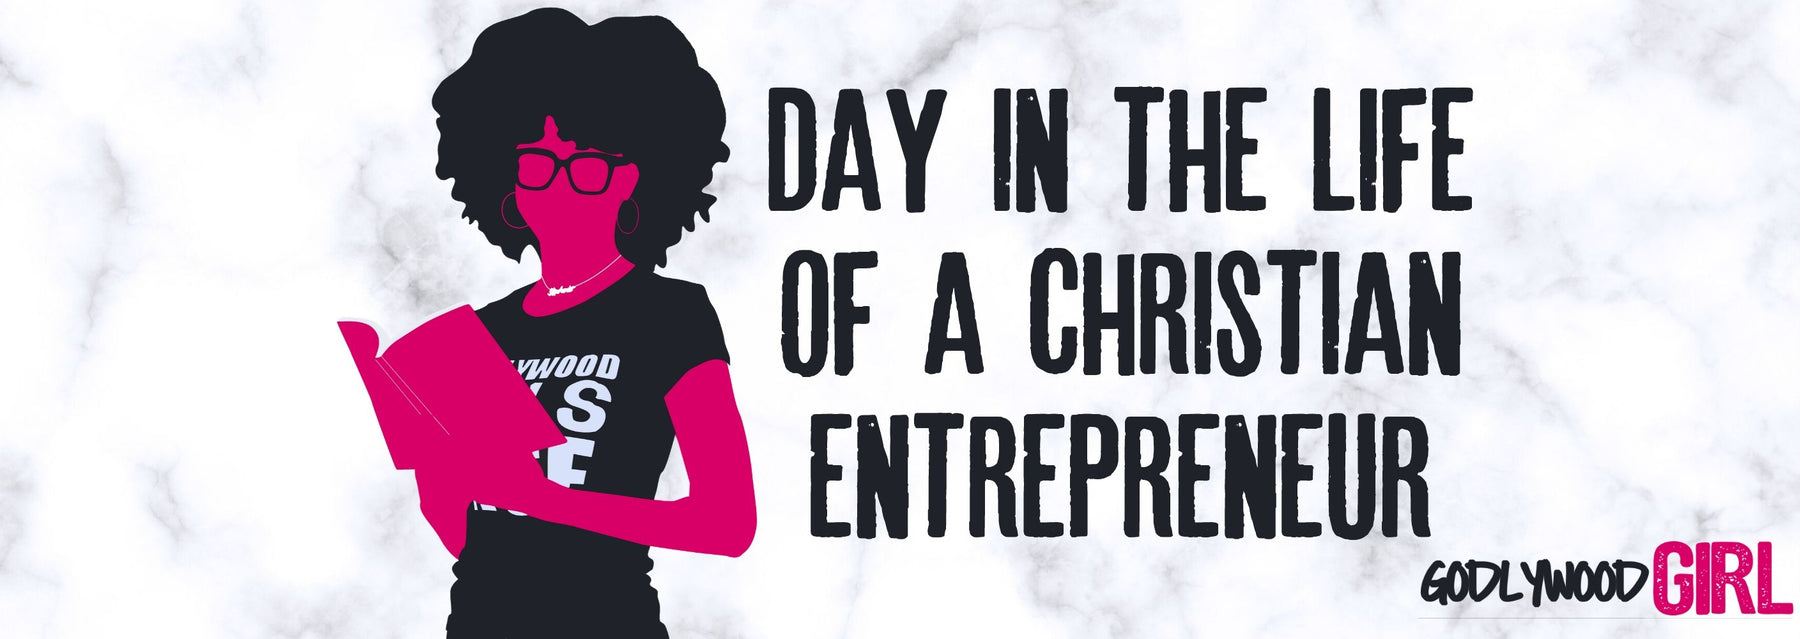 Day In The Life Of A Christian Entrepreneur Ep.23 | Day In The Life Of An Entrepreneur (New Marketing